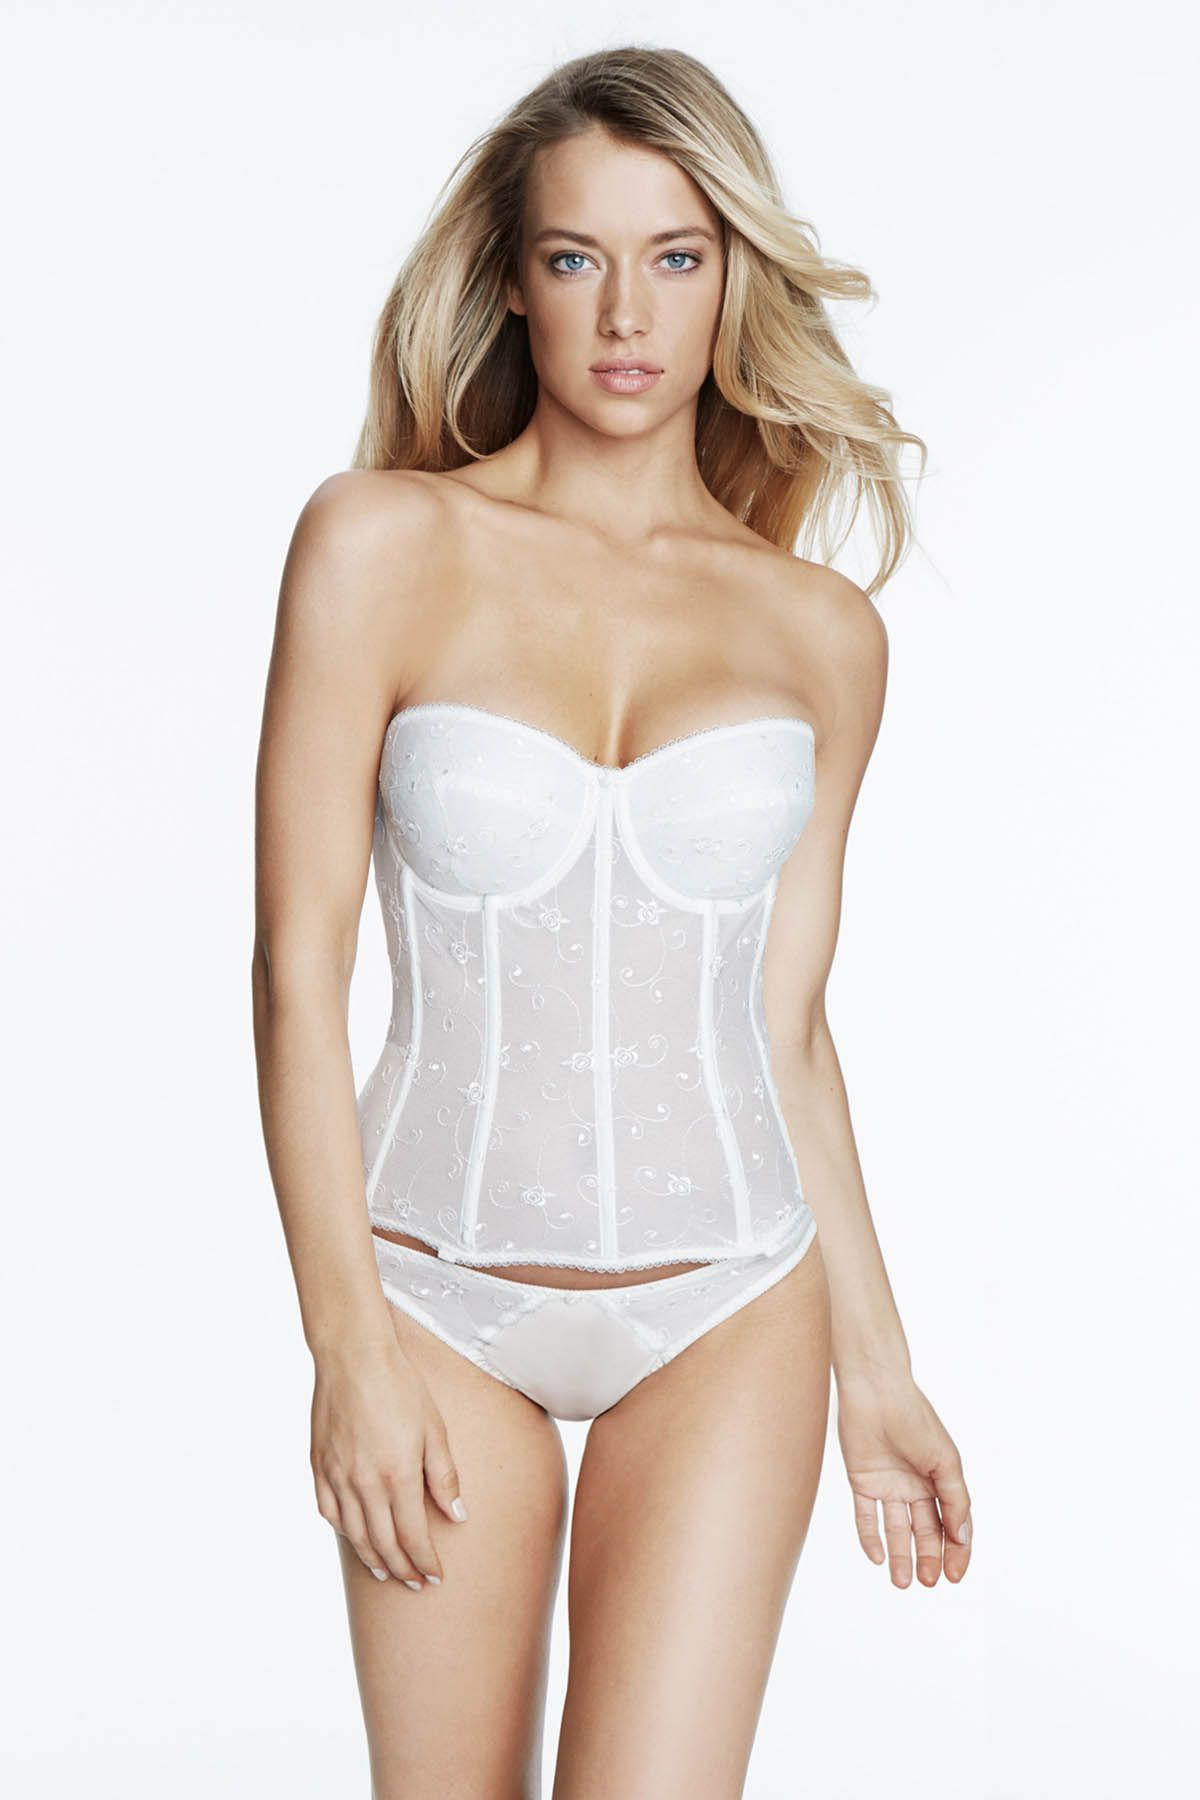 Bra for wedding dress shopping  DOMINIQUE Rosemarie  Clothes for Women with Boobs  Pinterest